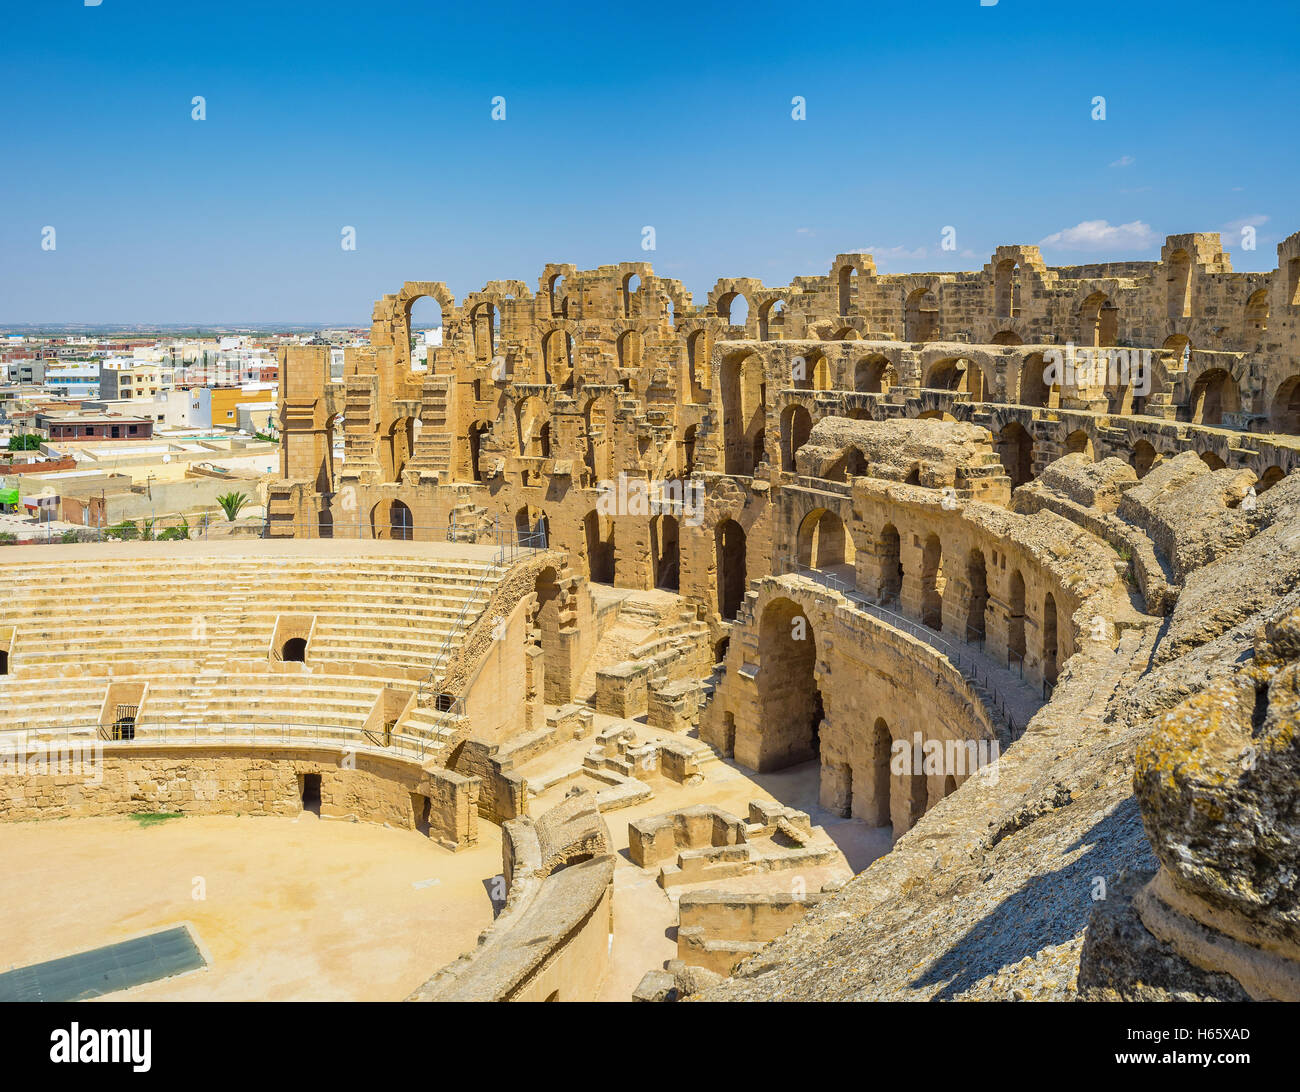 The famous amphitheatre of El Jem is one of the best preserved landmarks of roman period, Tunisia. - Stock Image